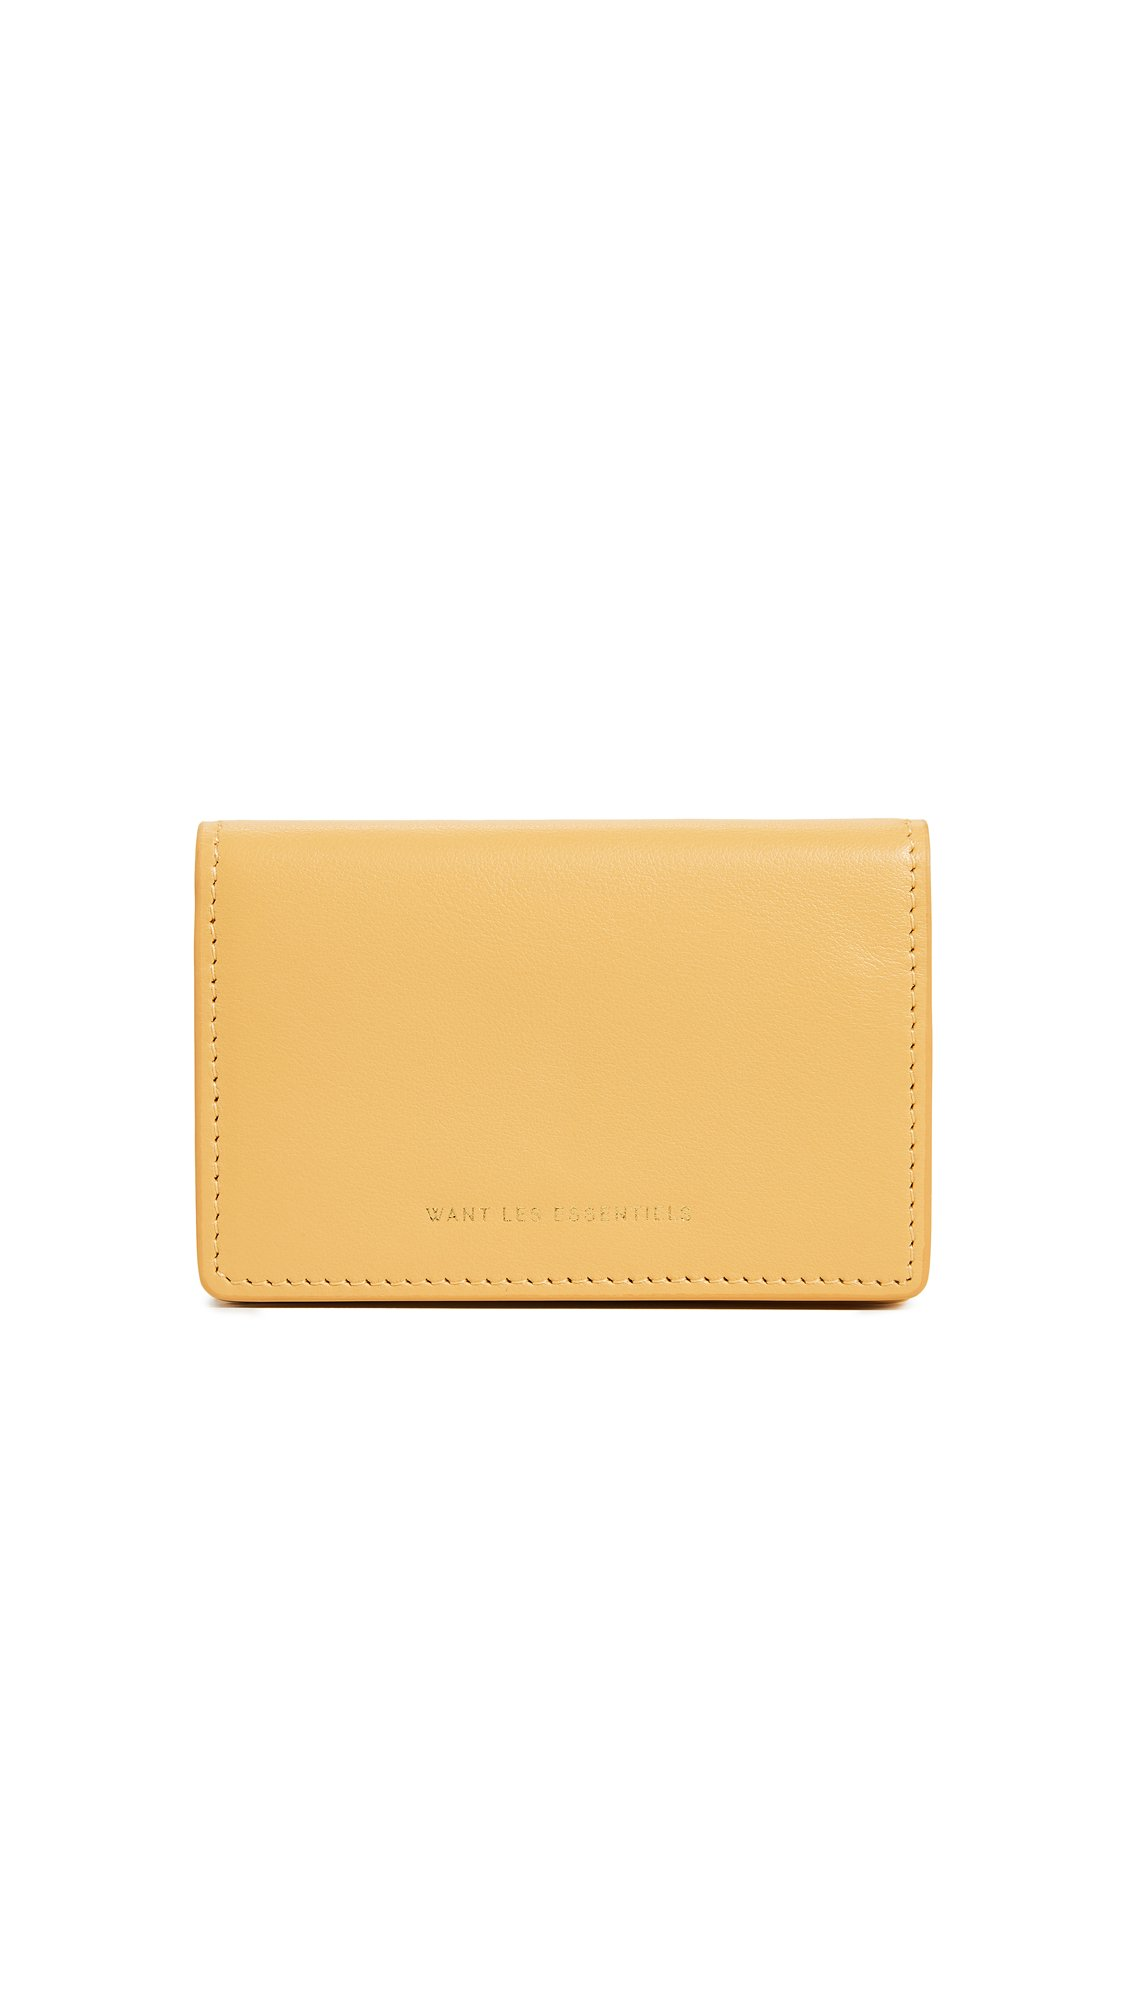 WANT LES ESSENTIELS Women's Lambert Card Case, Desert Marigold, One Size